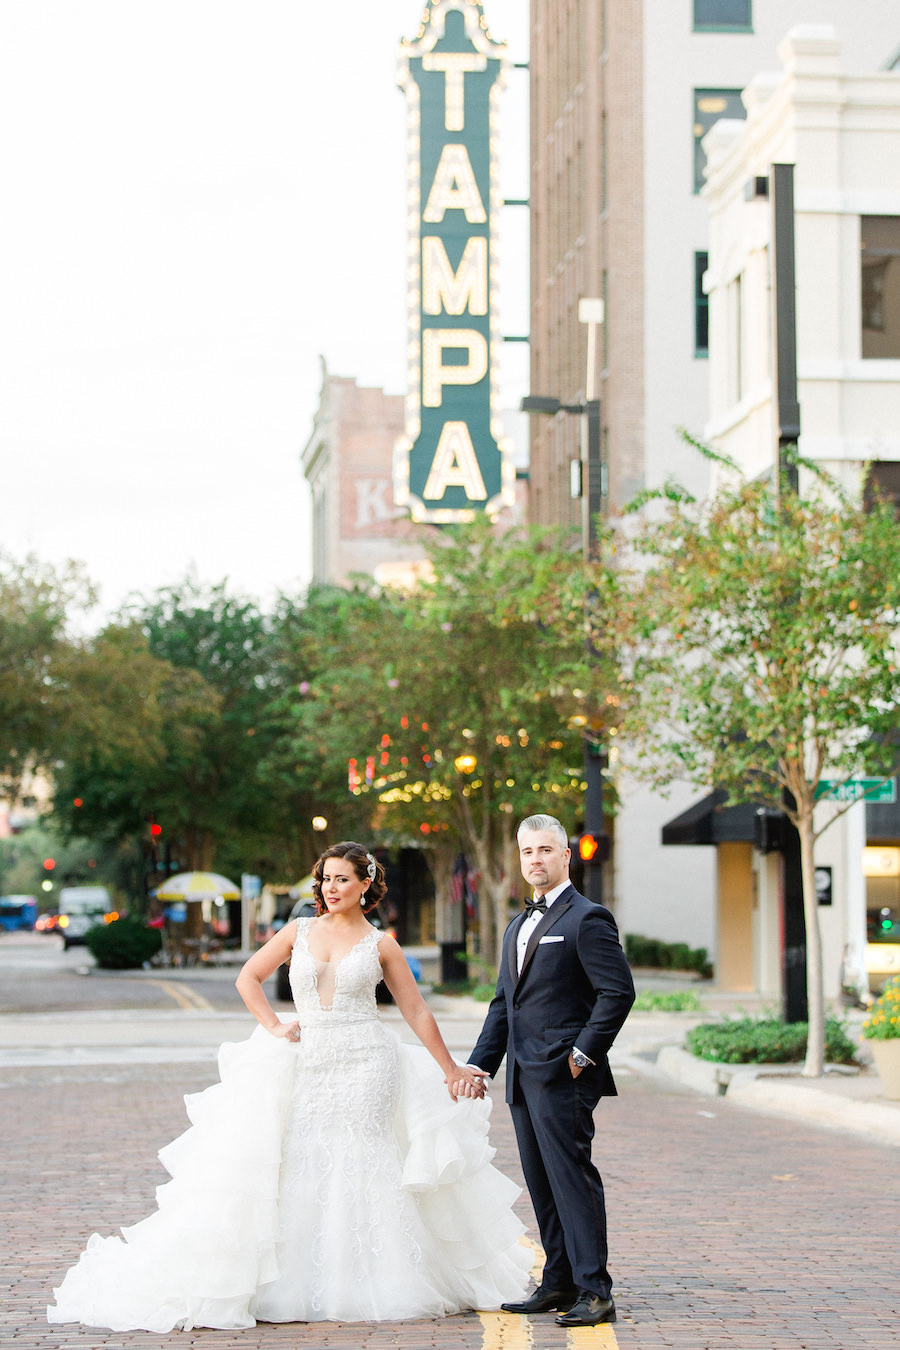 Outdoor, Downtown Tampa Wedding Portrait with Tampa Theatre Sign | Bride in Ivory Mermaid Ines DiSanto Wedding Dress from Isabel O'Neil Bridal | Liana Fuente Wedding Portrait | Tampa Wedding Photographer Ailyn La Torre Photography